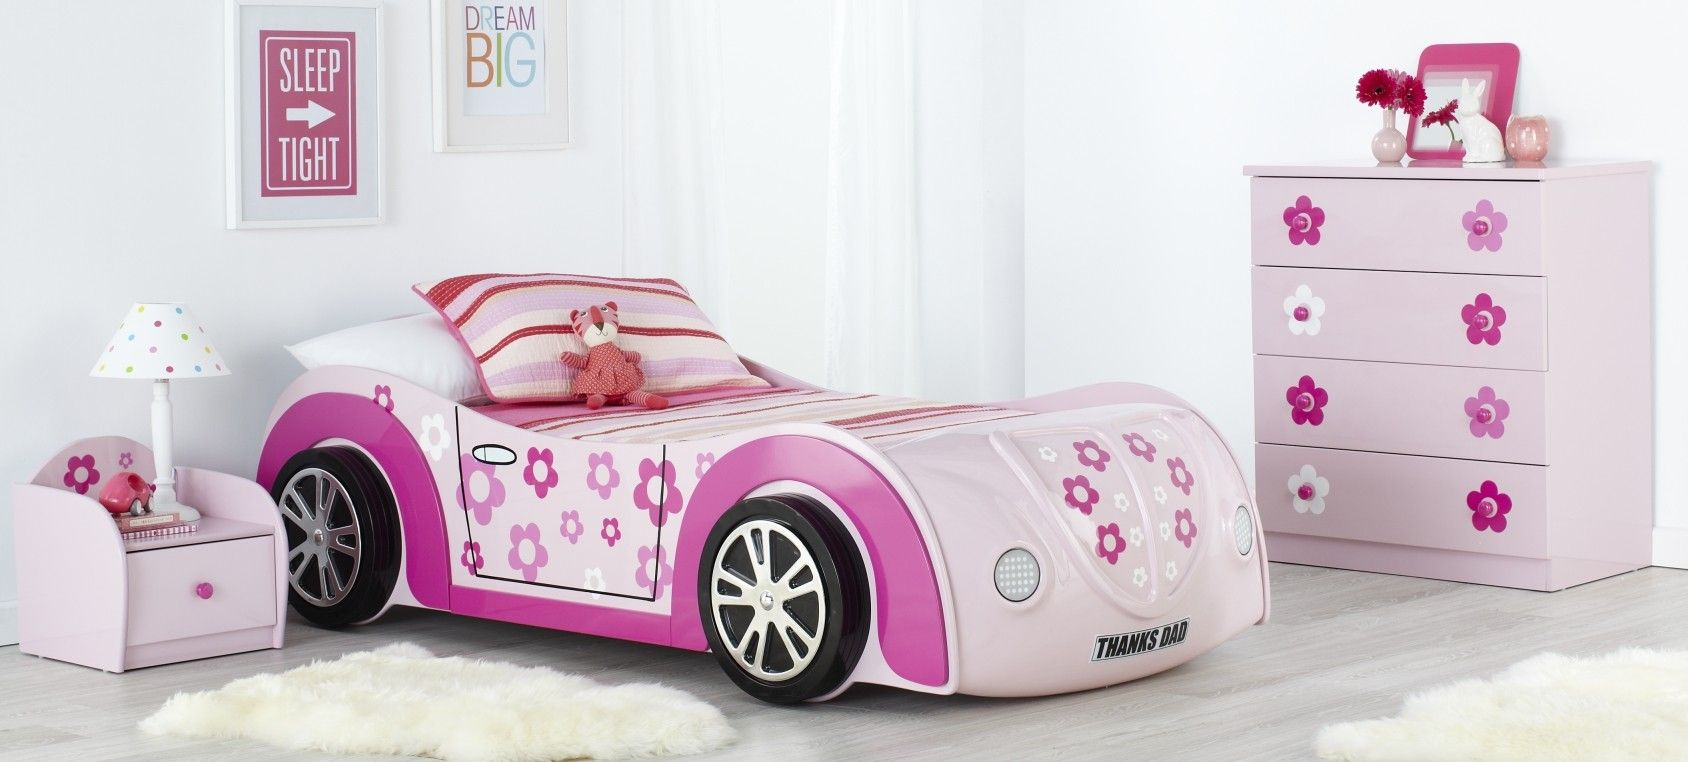 Pink Childrens Bedroom Daisy Kids Car Bed And Themed Bedroom Furniture Suite With Pink